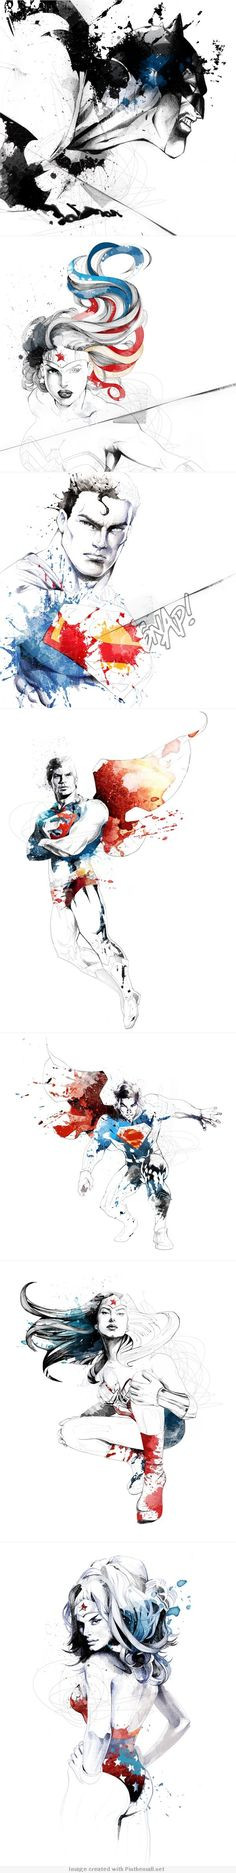 #SuperHero #art